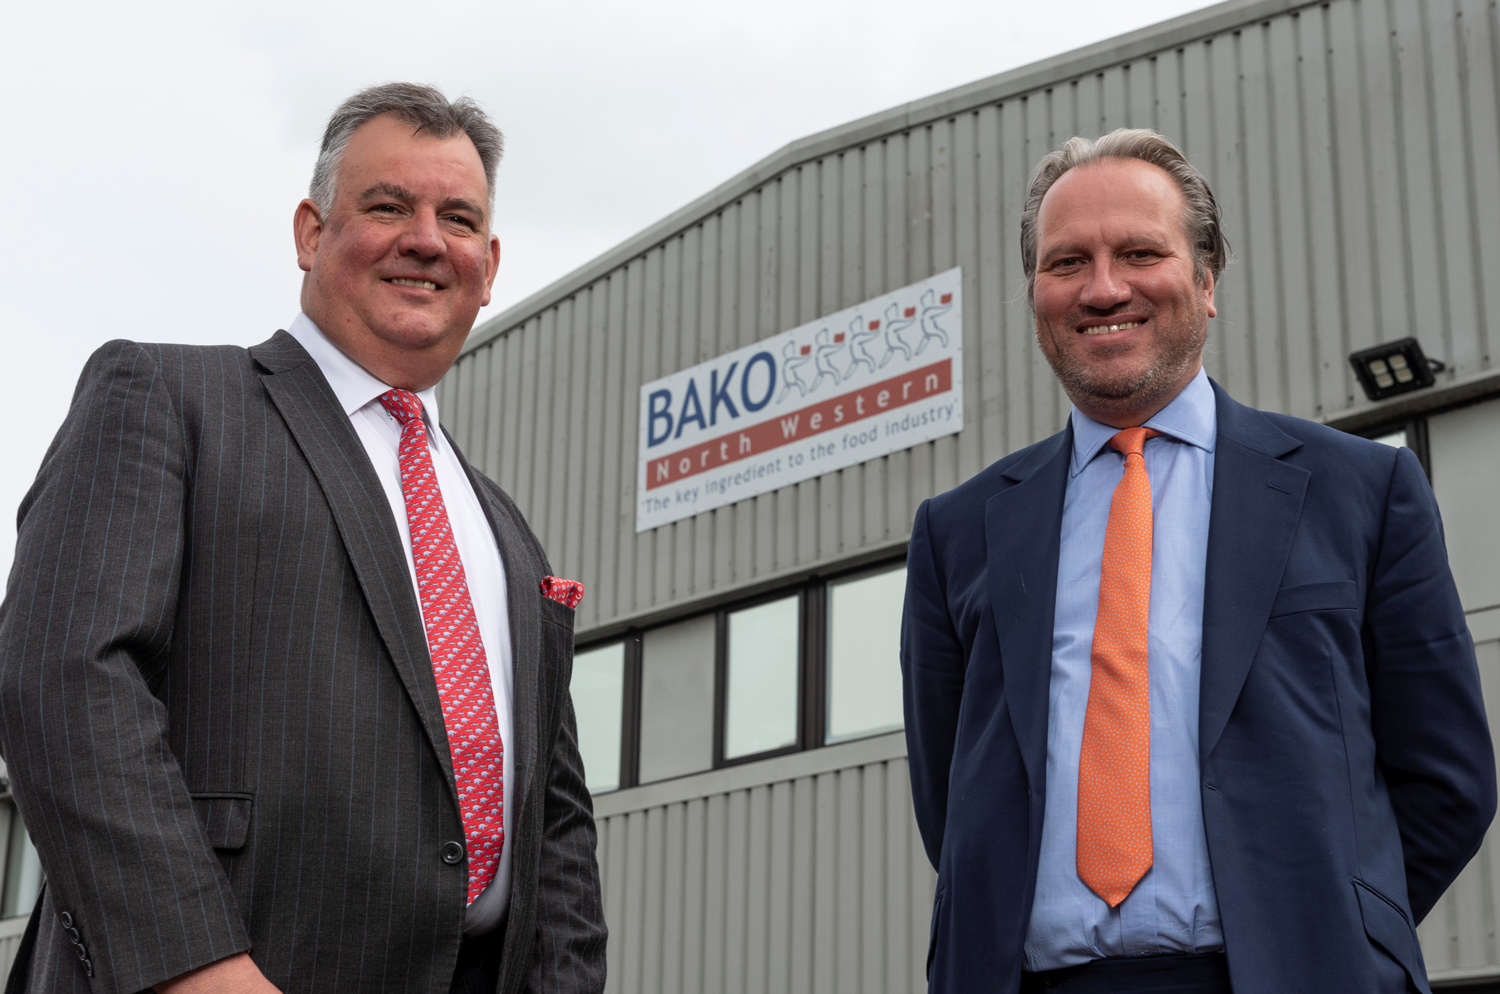 Luke Evans Bakery MD appointed chairperson of BAKO Group